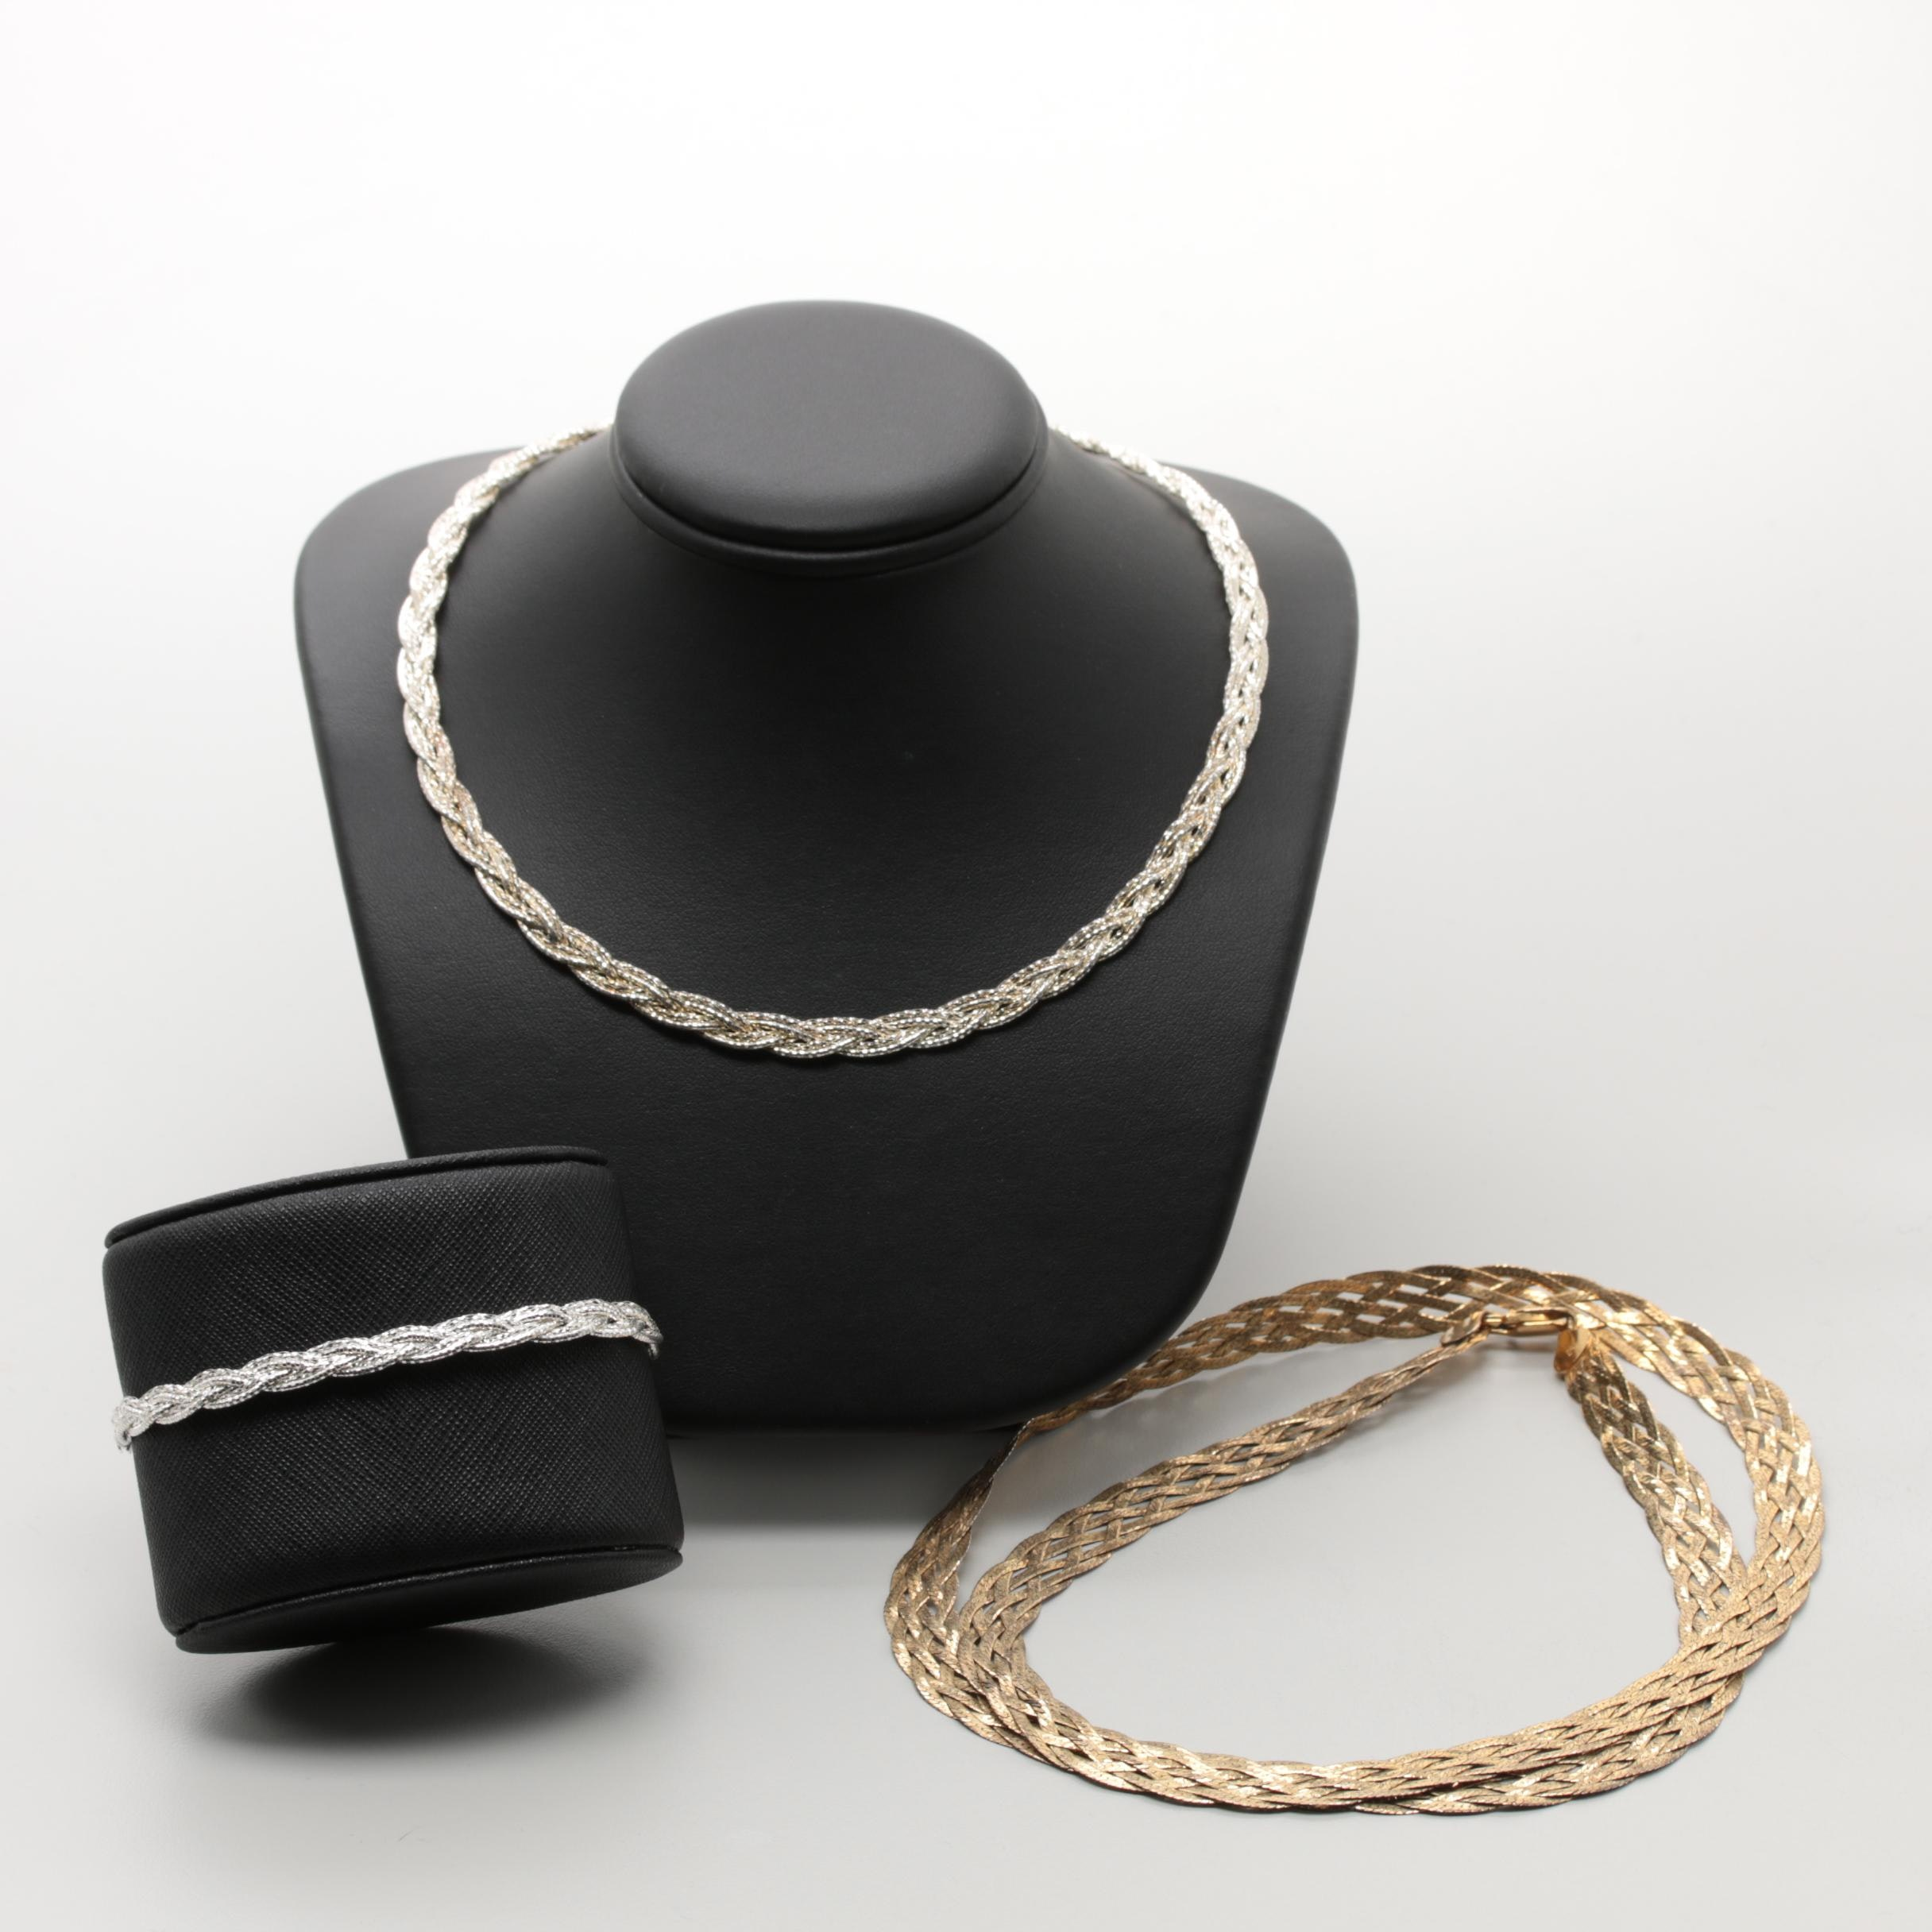 Braided Sterling Silver Necklaces and Bracelet